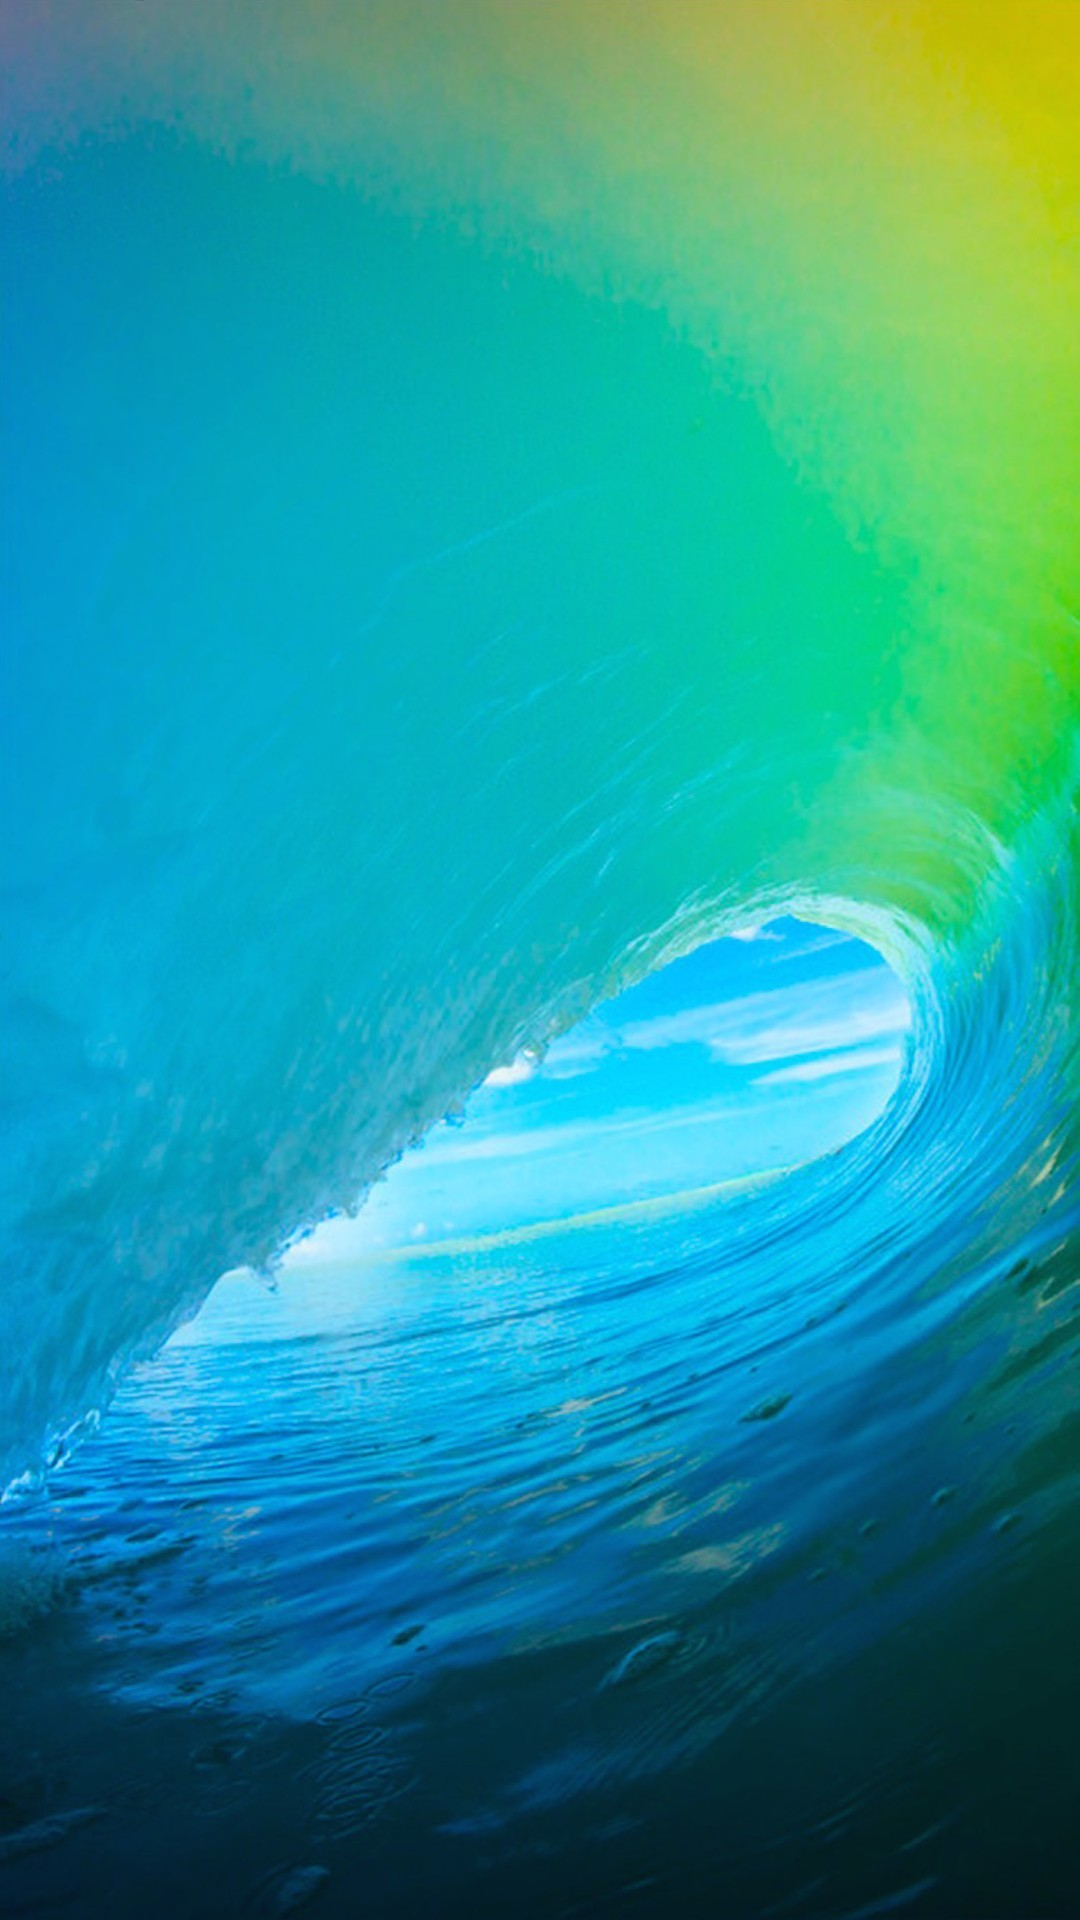 Explore Iphone 6 Wallpaper, Phone Wallpapers, and more!